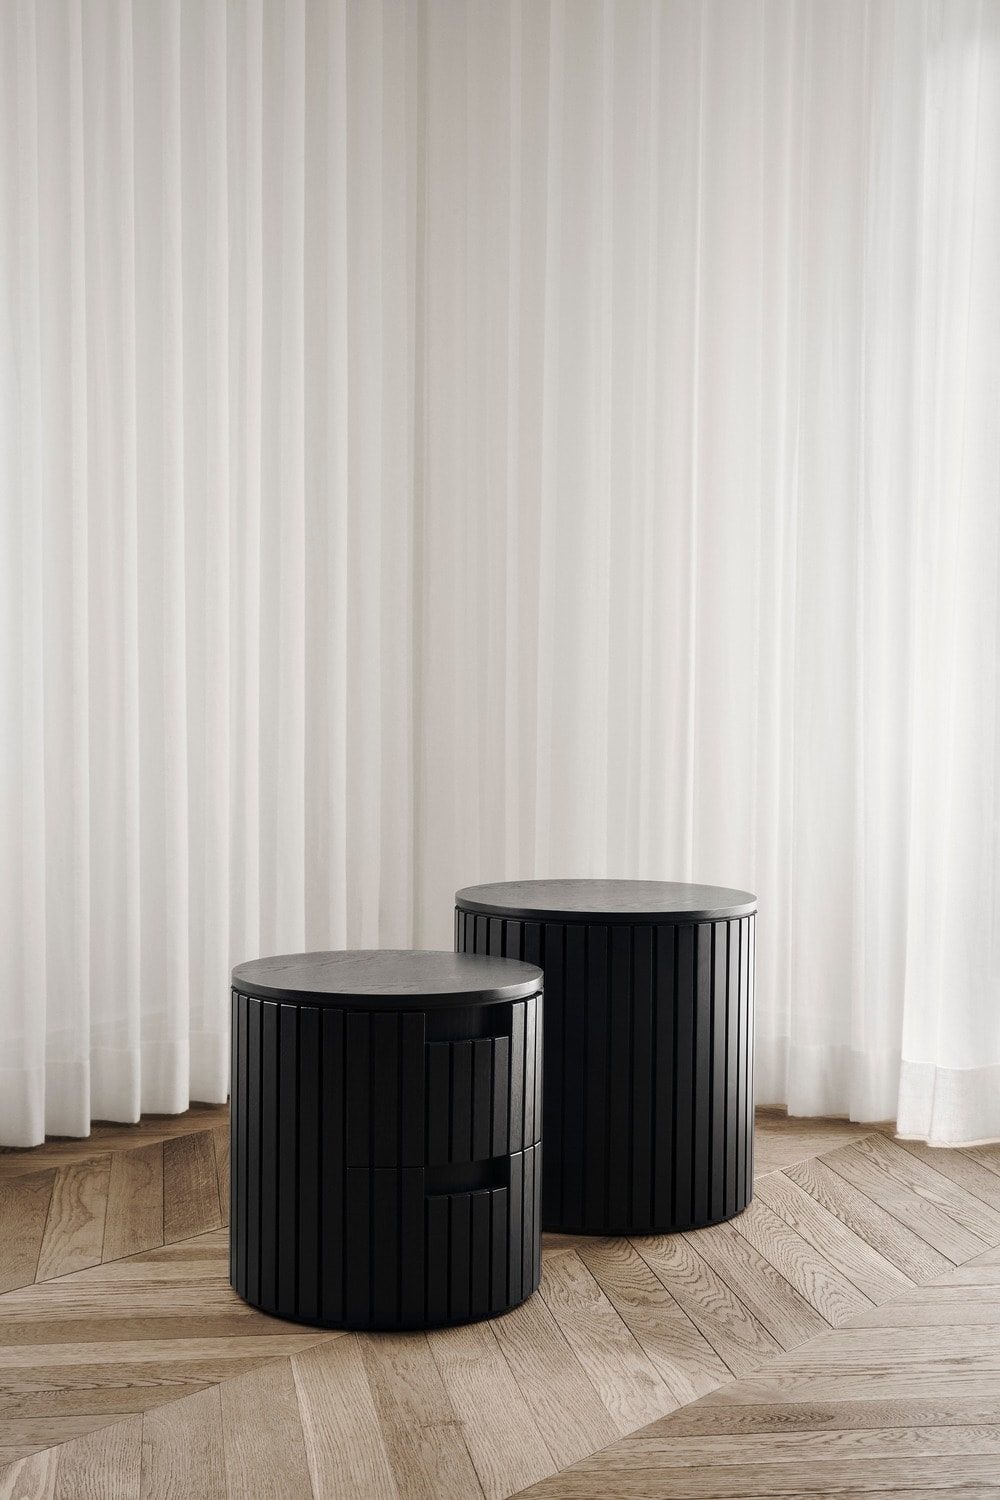 At a far corner of the living room is a couple of black stoops that stand out against the bright curtained windows.